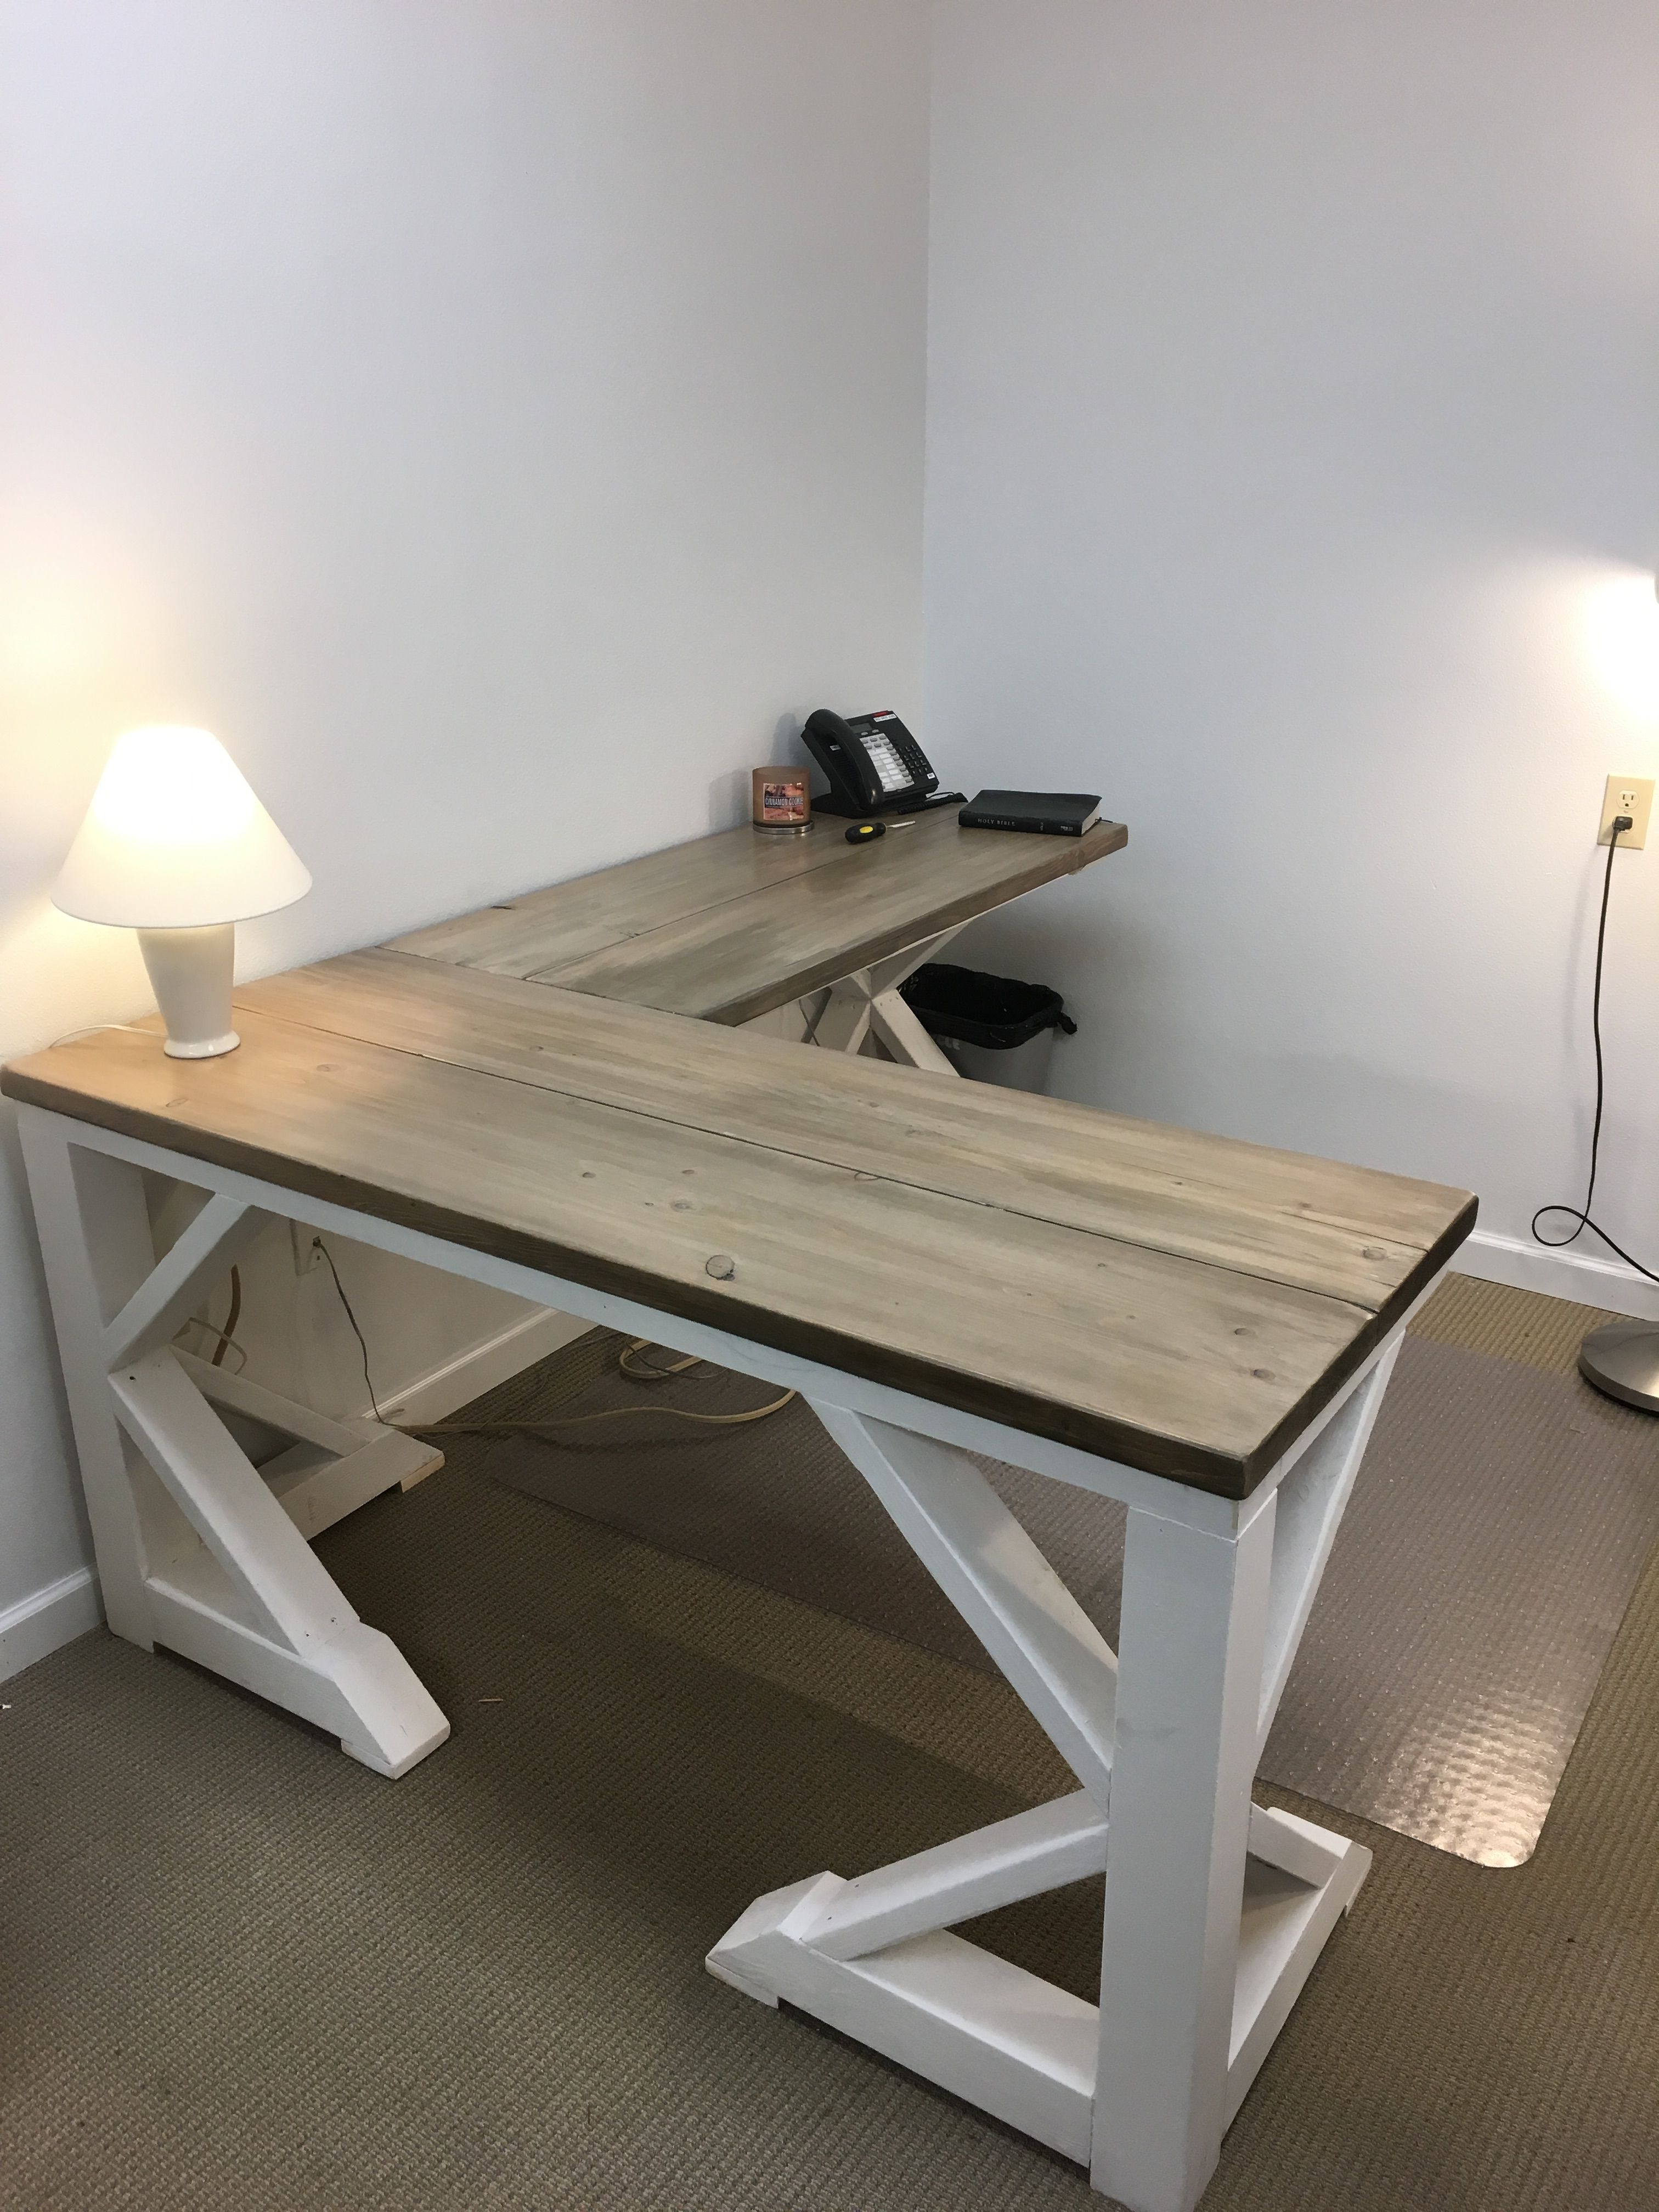 Diy Farmhouse Desk For 75 00 Cheap Home Decor Rustic House